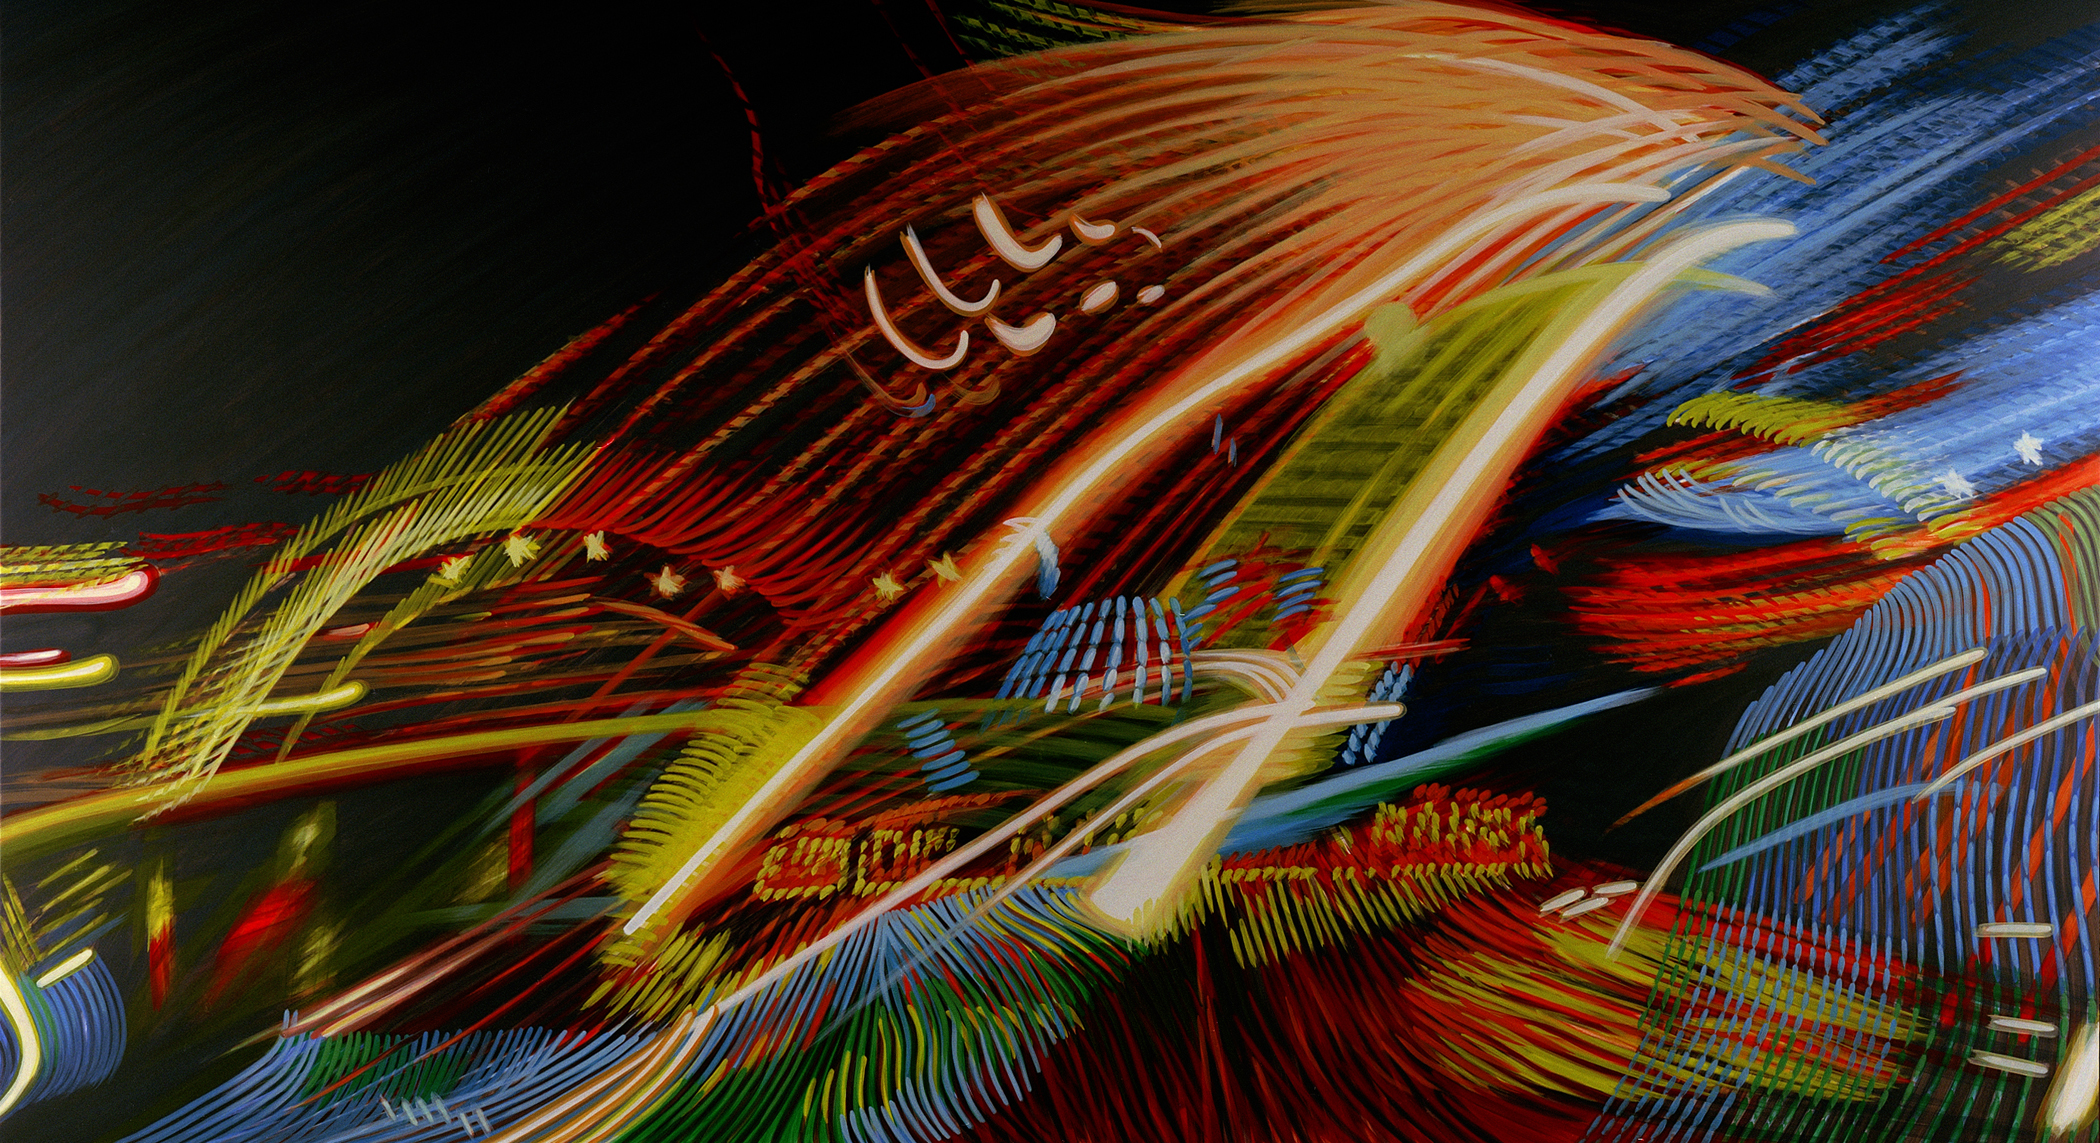 Wild Ride V 2011 acrylic on canvas on board 72x132in